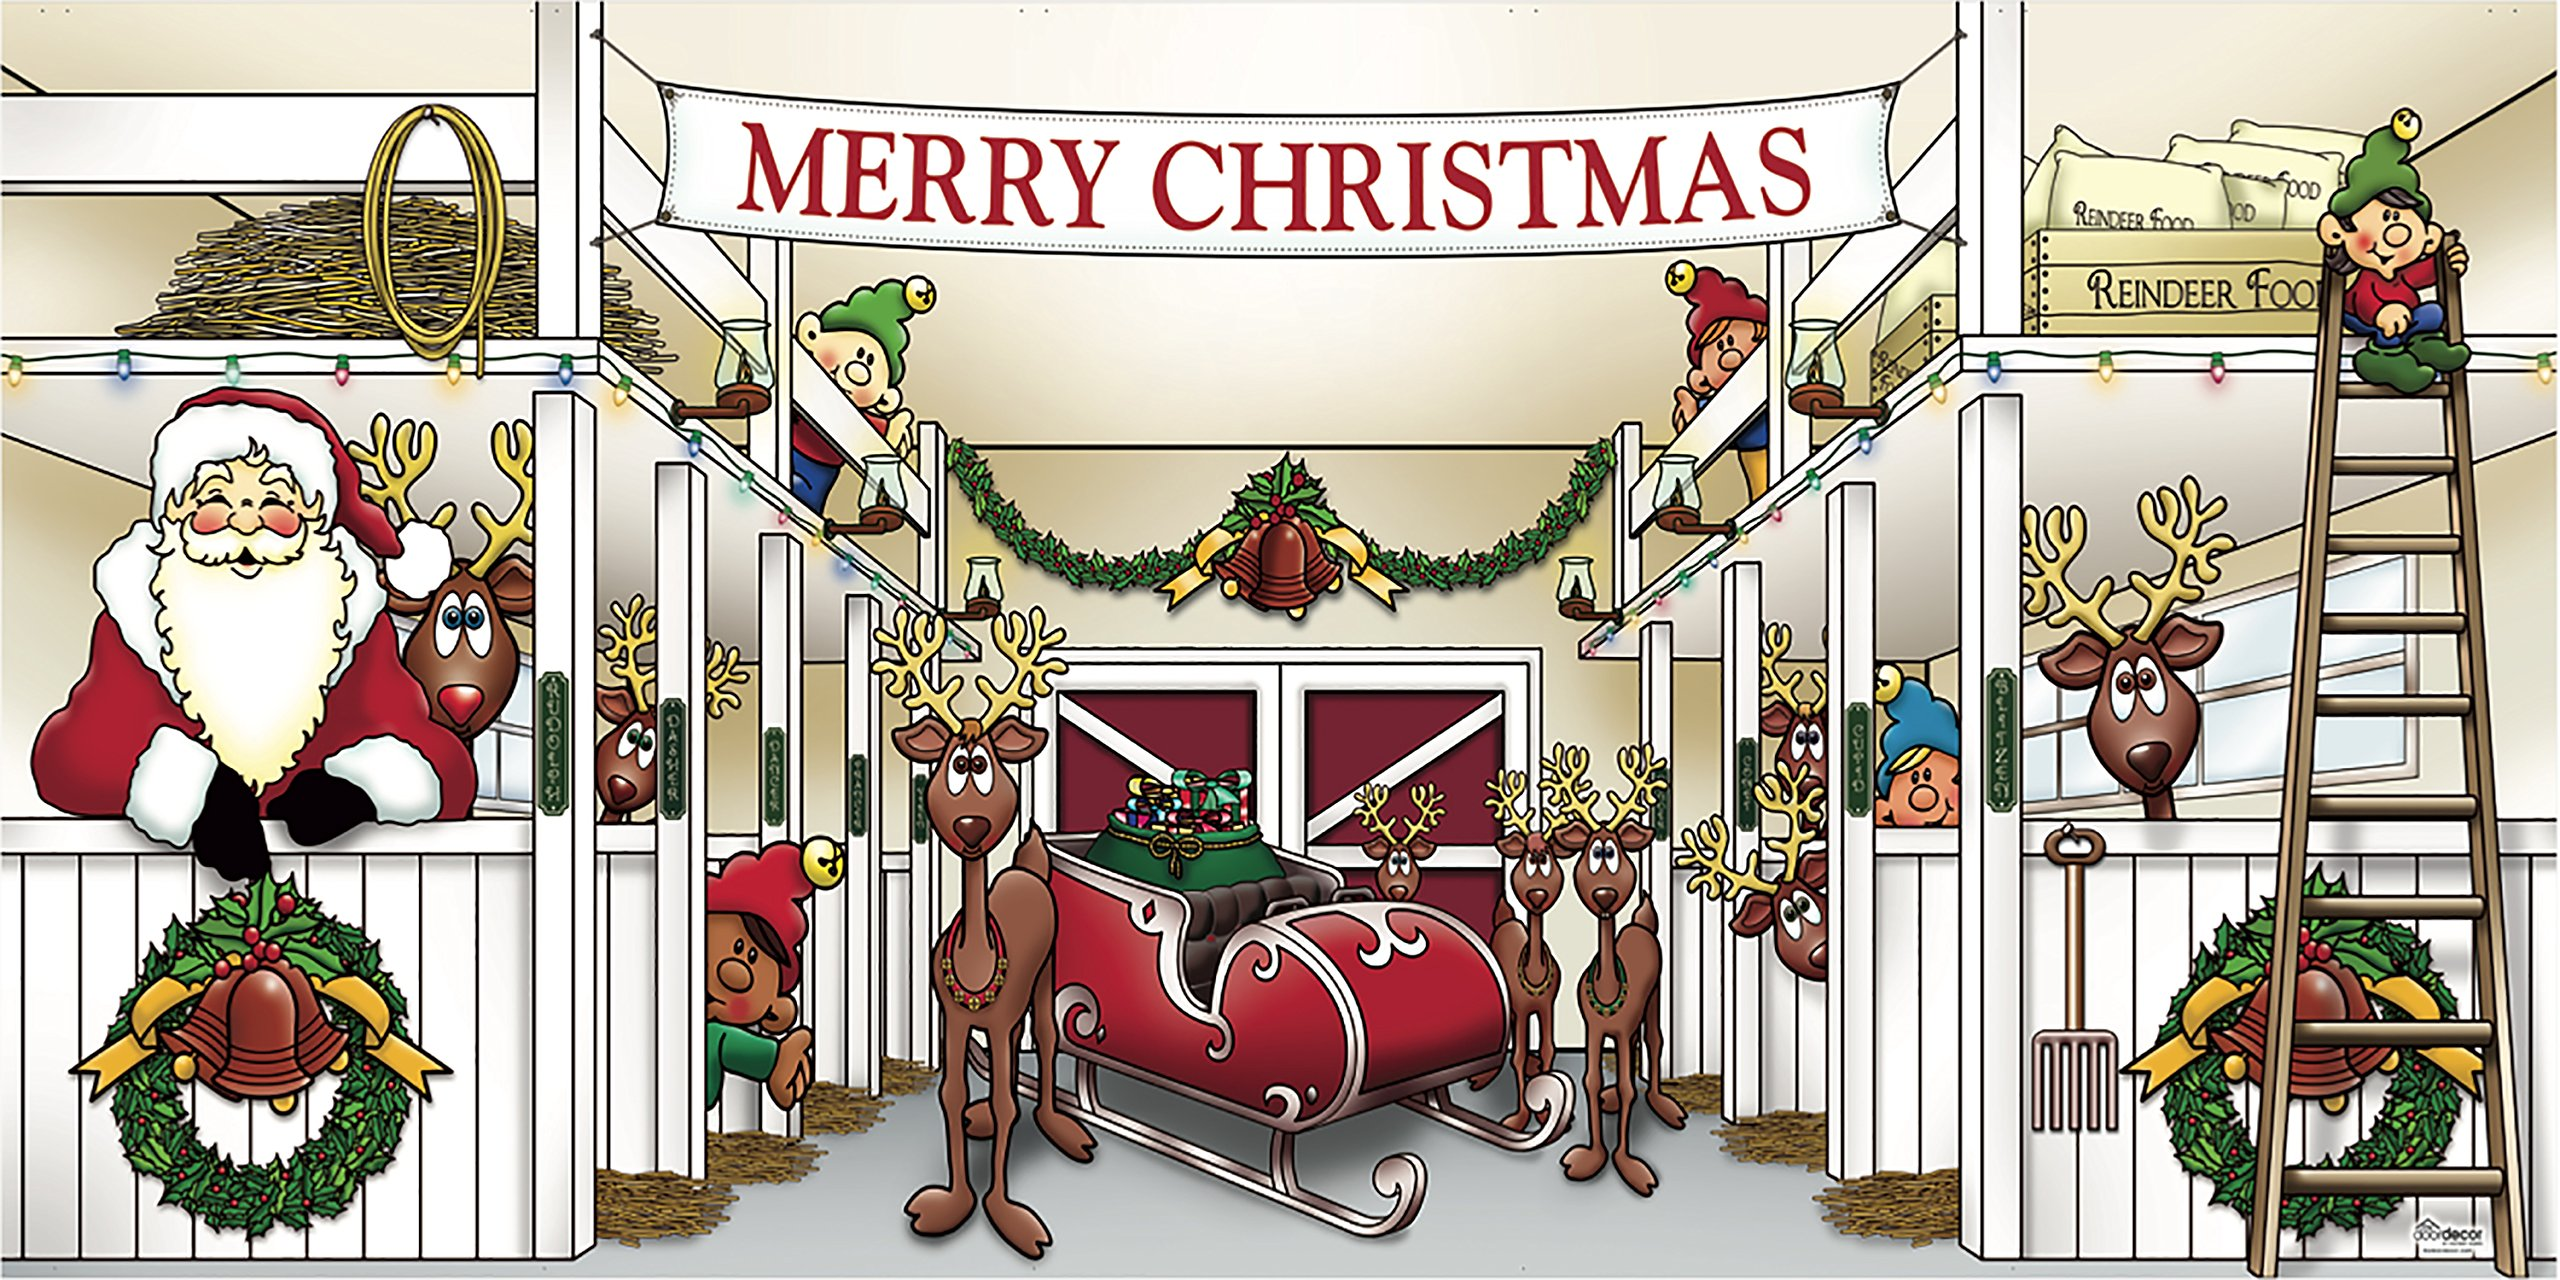 Outdoor Christmas Holiday Garage Door Banner Cover Mural Décoration 8'x16' - Huge Santa's Reindeer Barn Holiday Garage Door Banner Décor Sign 8'x16'